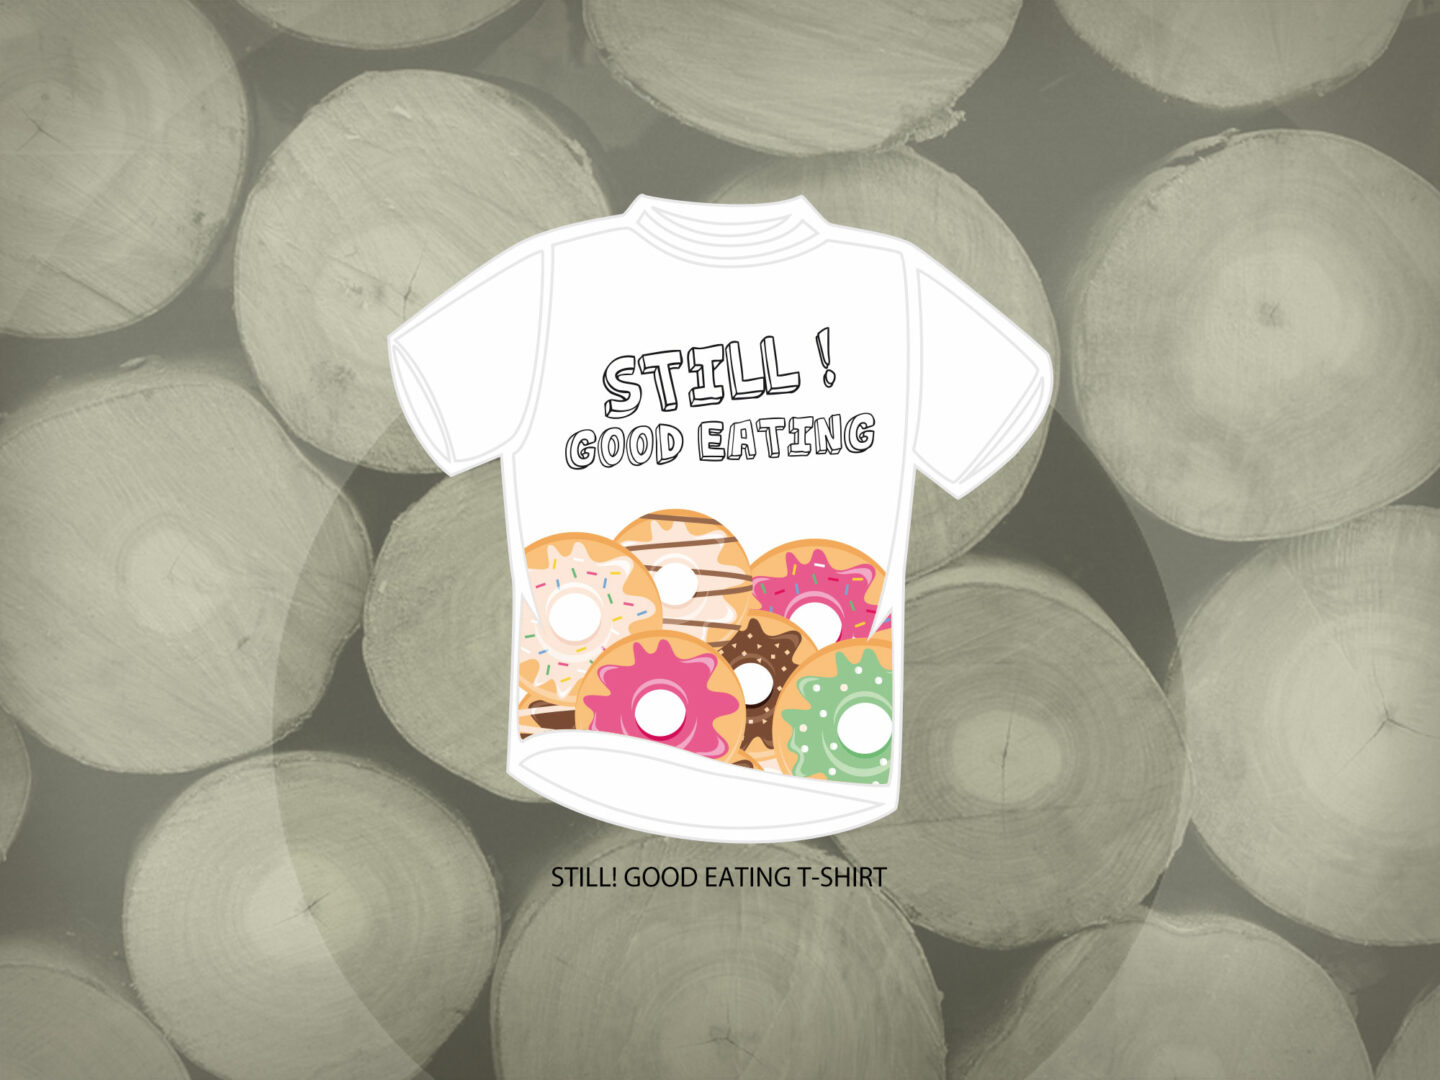 Still! Skateboards Grafica Abbigliamento Sportivo T-Shirt Still! Good Eating